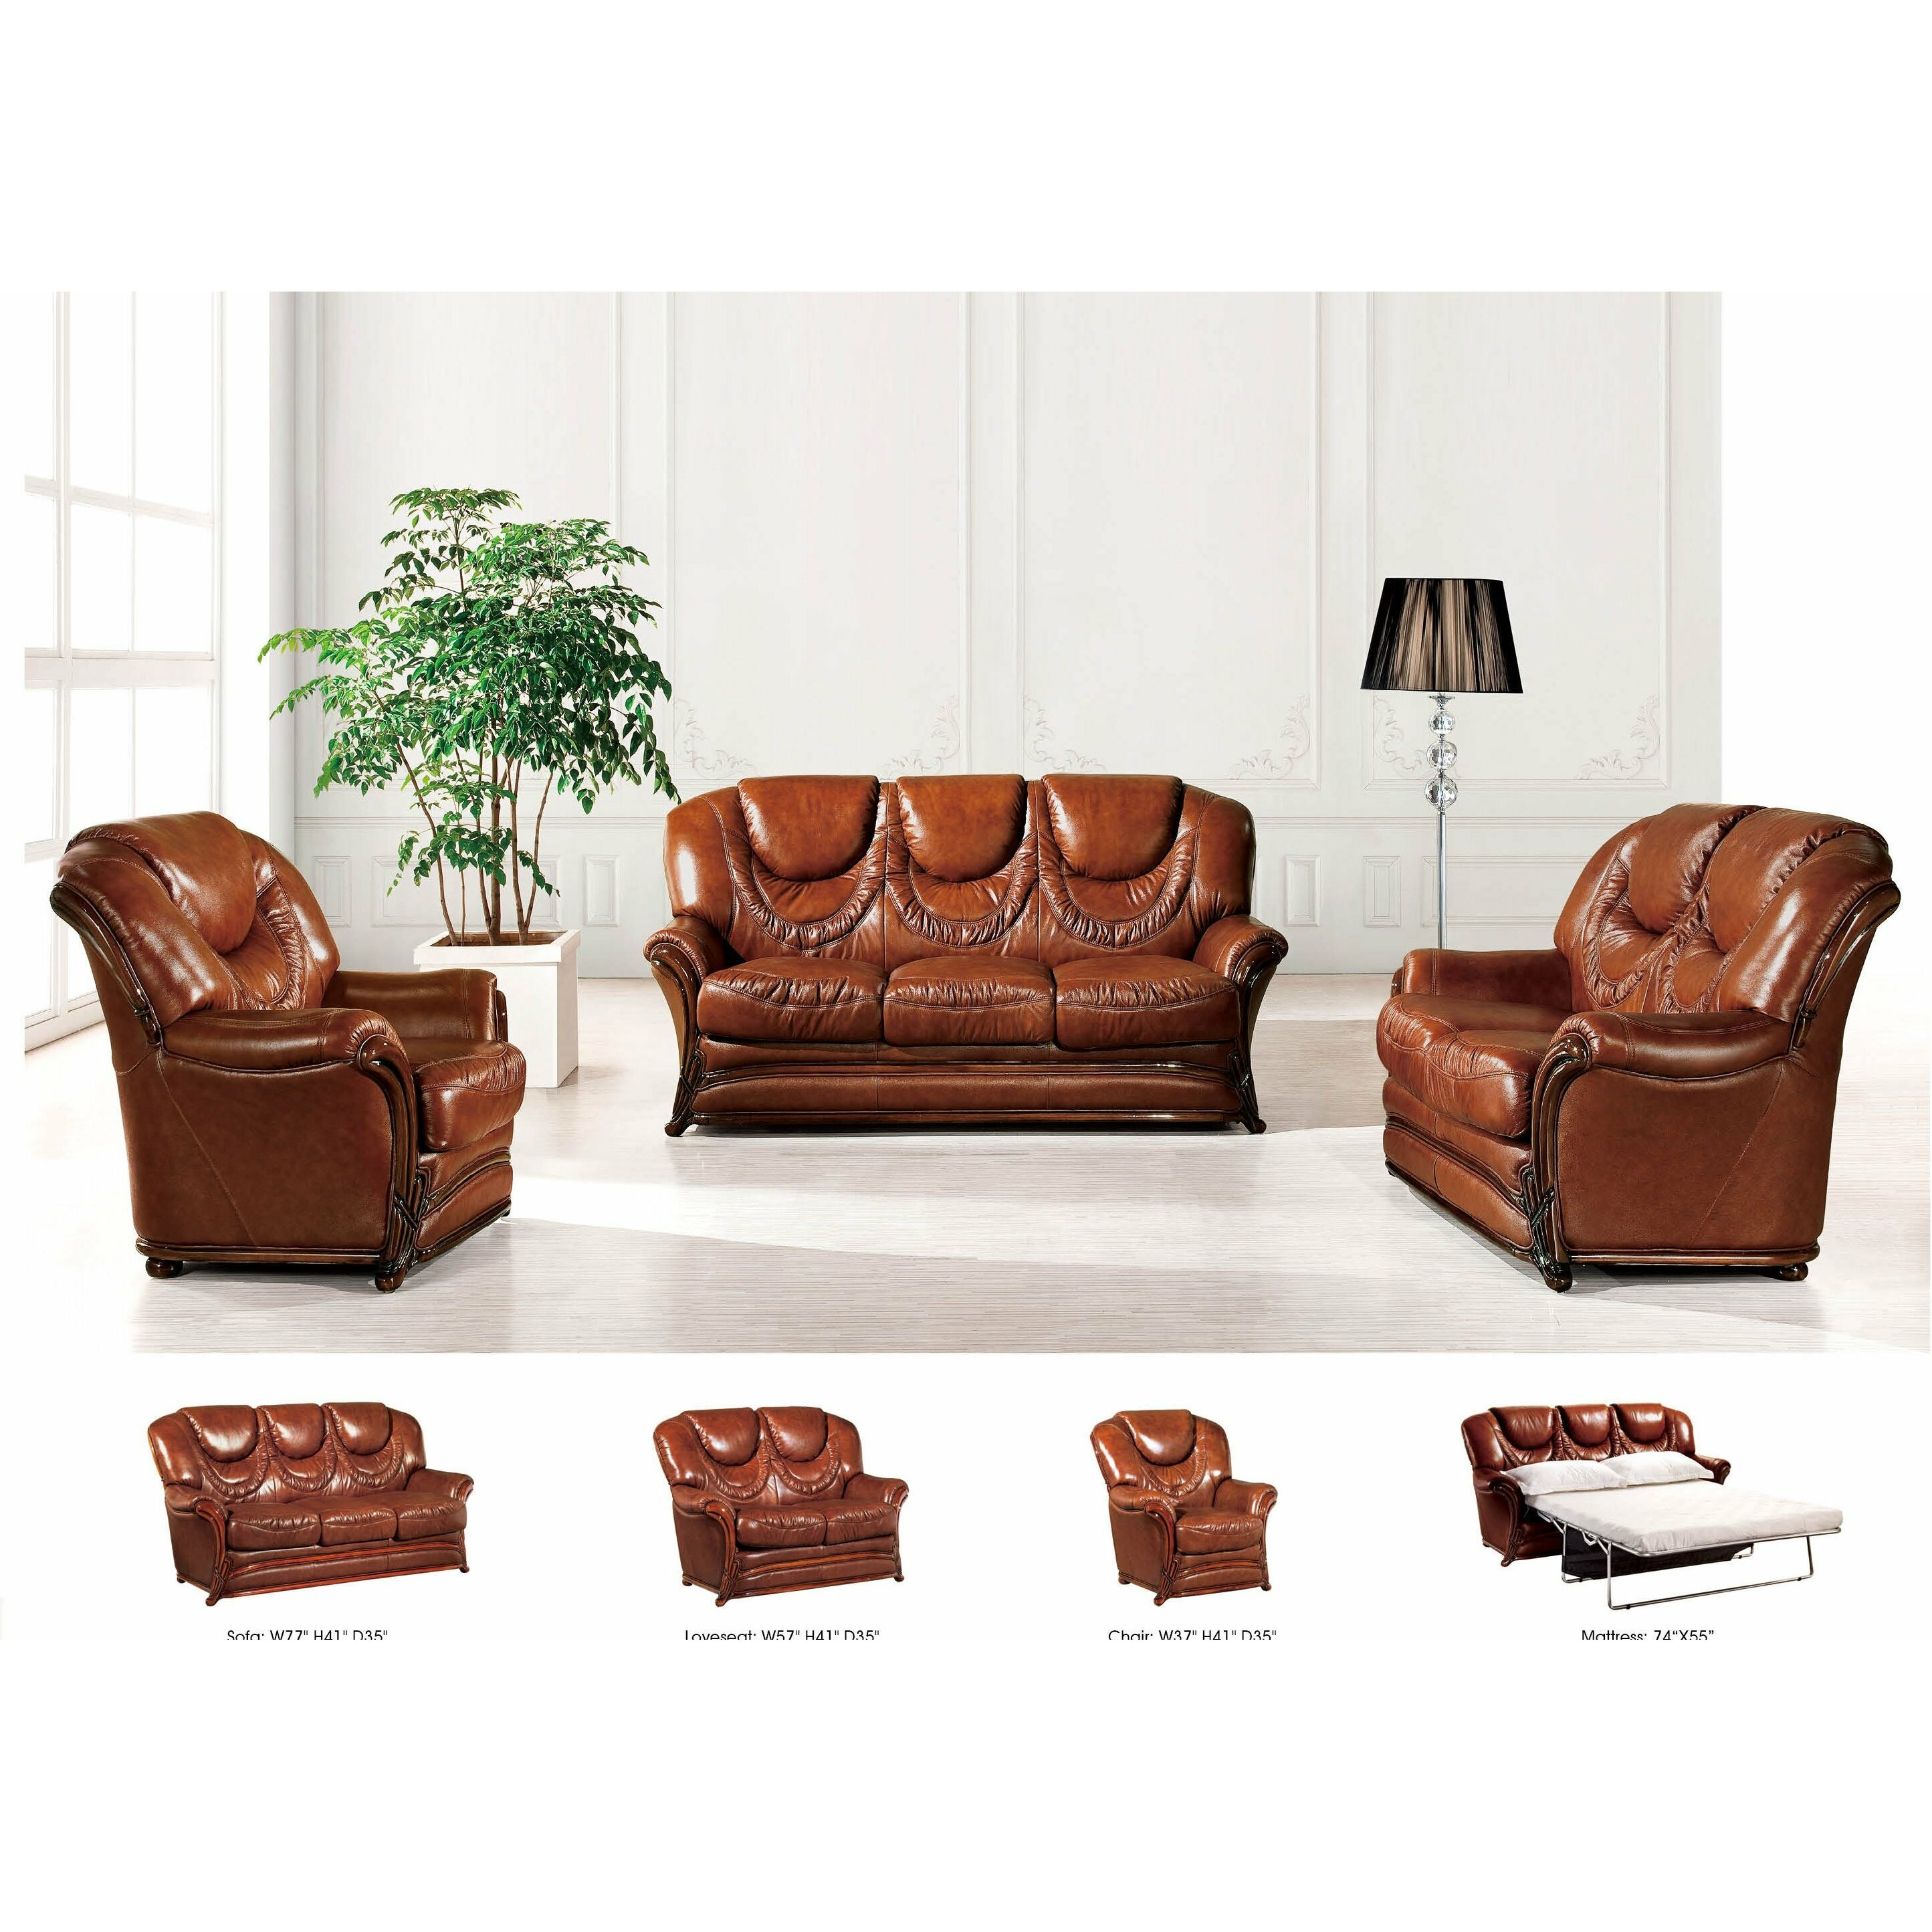 Nocidesign 3 piece leather living room set wayfair for 3 piece living room set